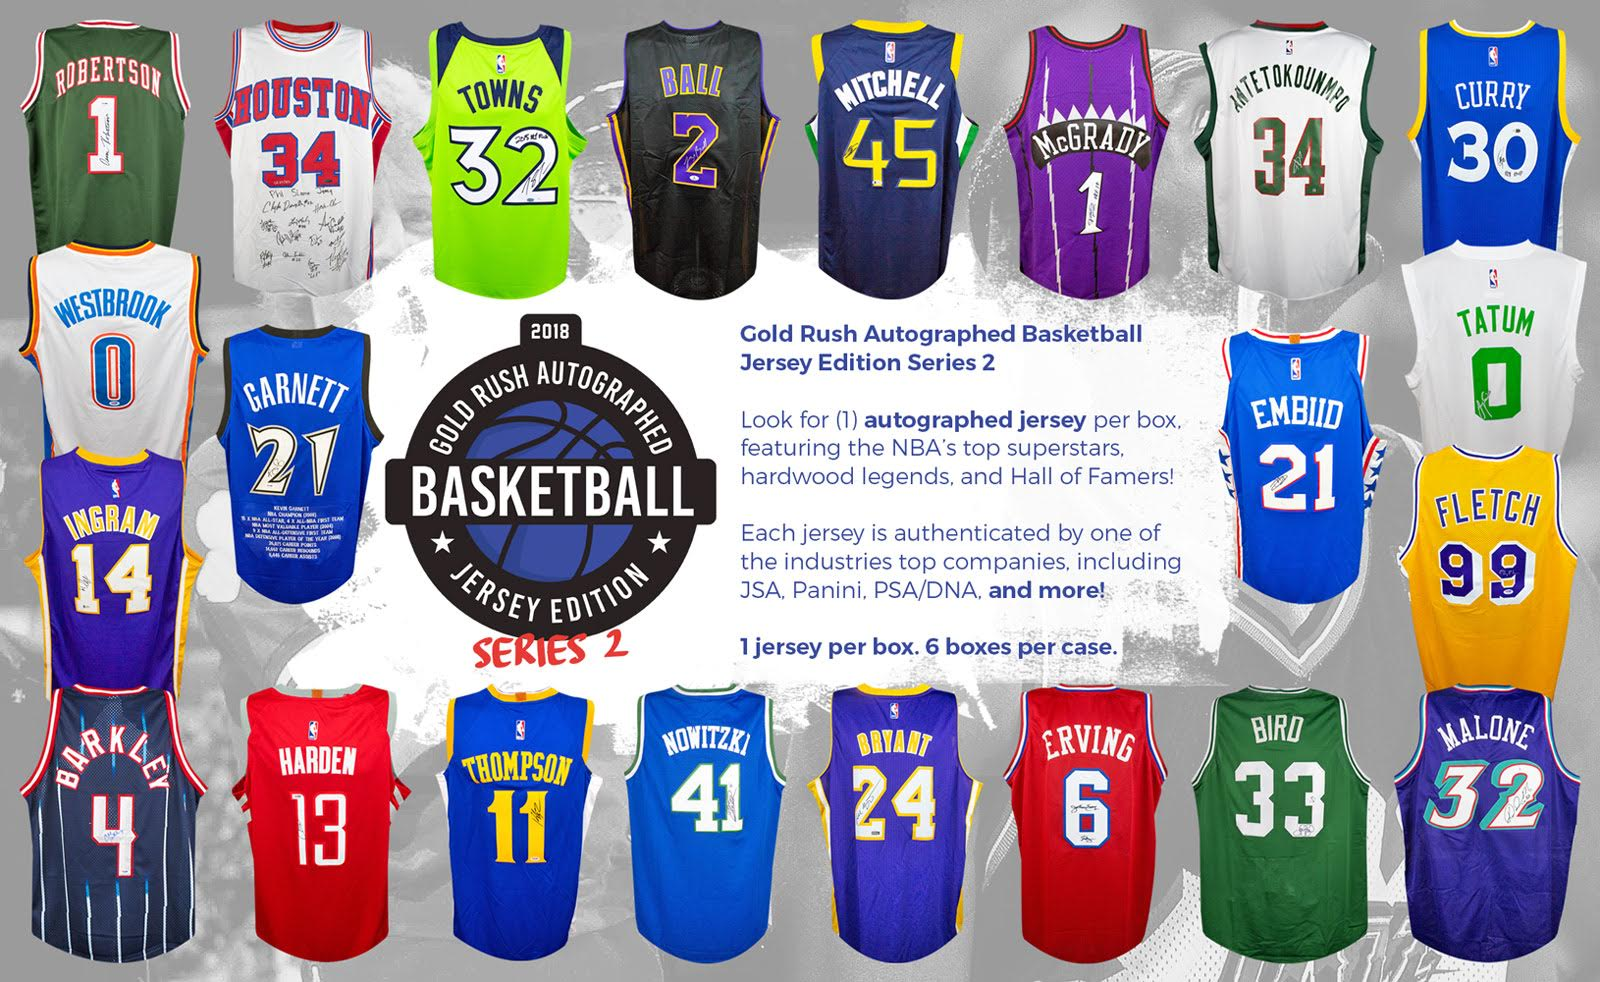 2018 Gold Rush Autographed Basketball Jersey Edition Series 2-Cherry Collectables